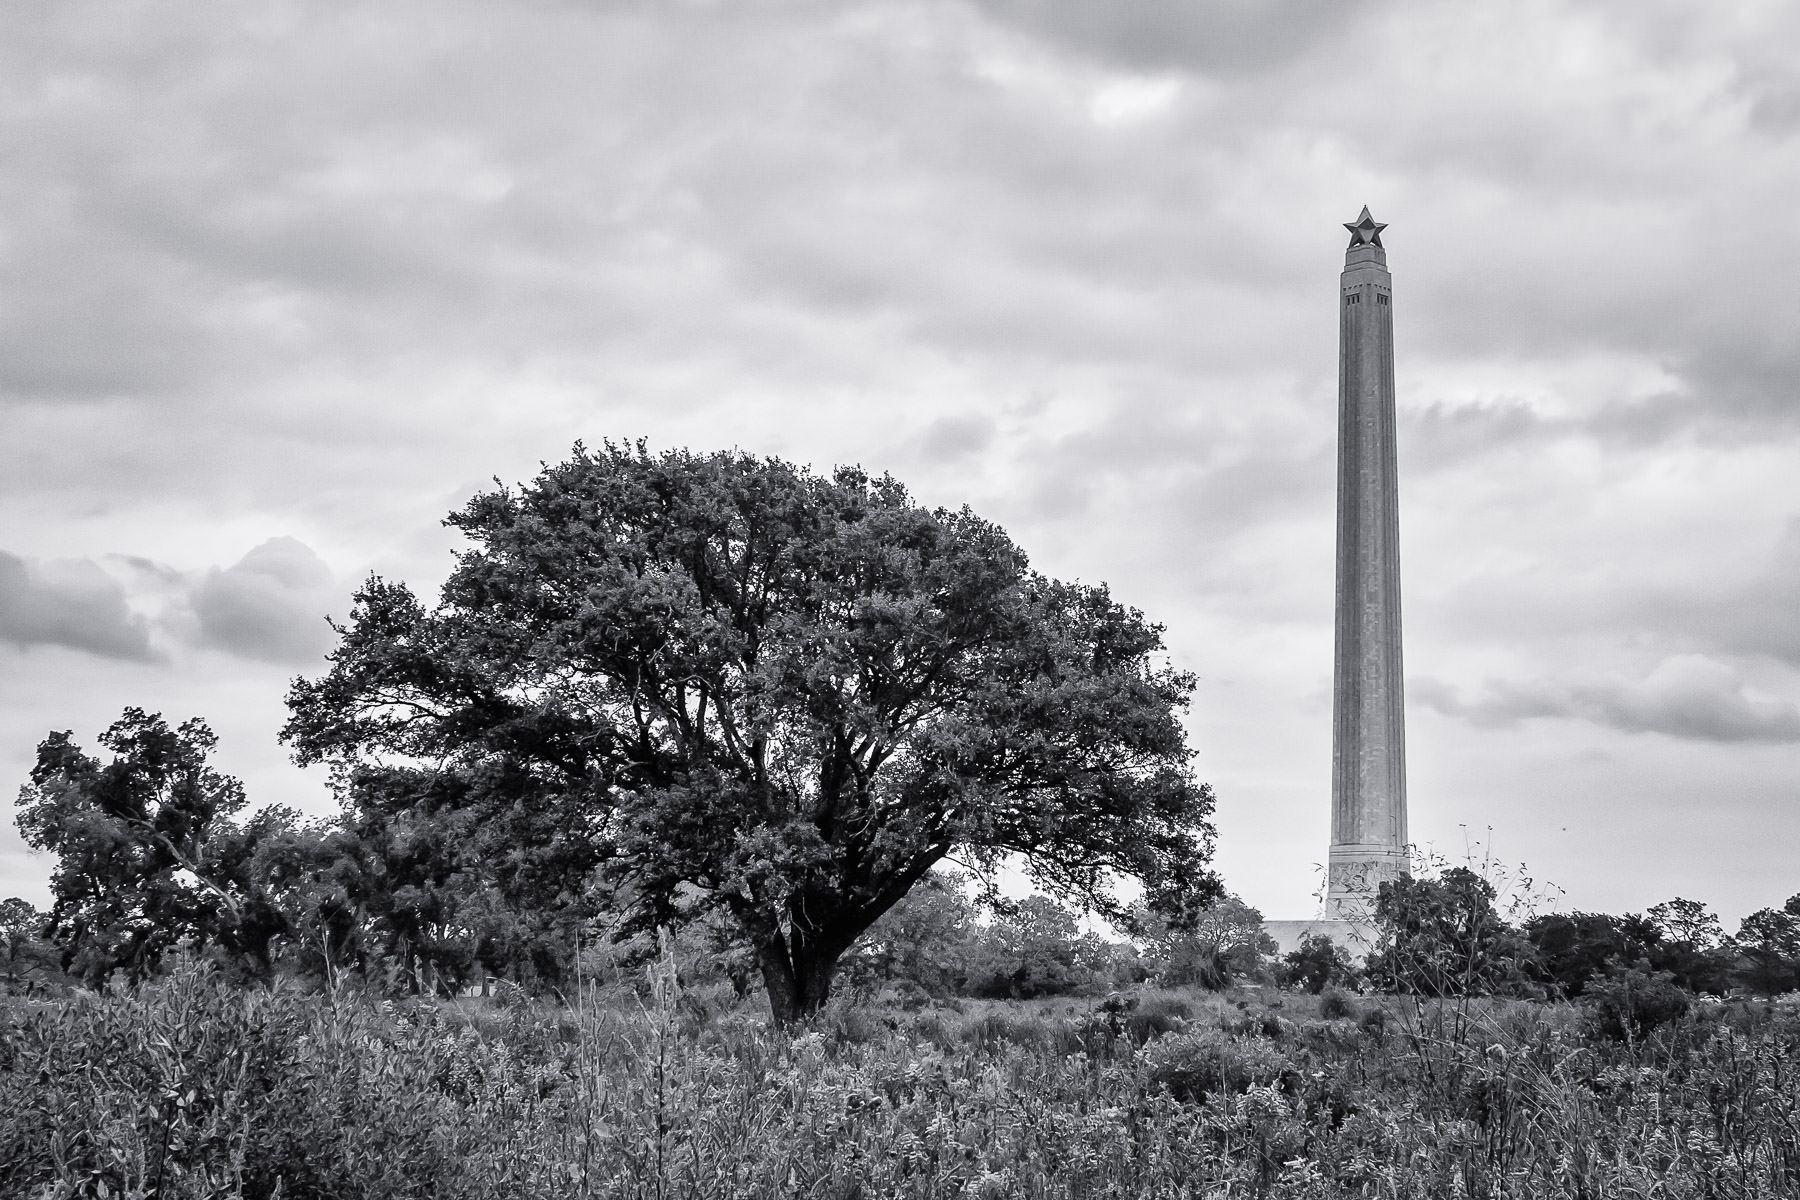 Texas' San Jacinto Monument—a 567-foot-tall granite column that commemorates the Battle of San Jacinto during the Texas Revolution—rises above the surrounding fields along the Houston Ship Channel.